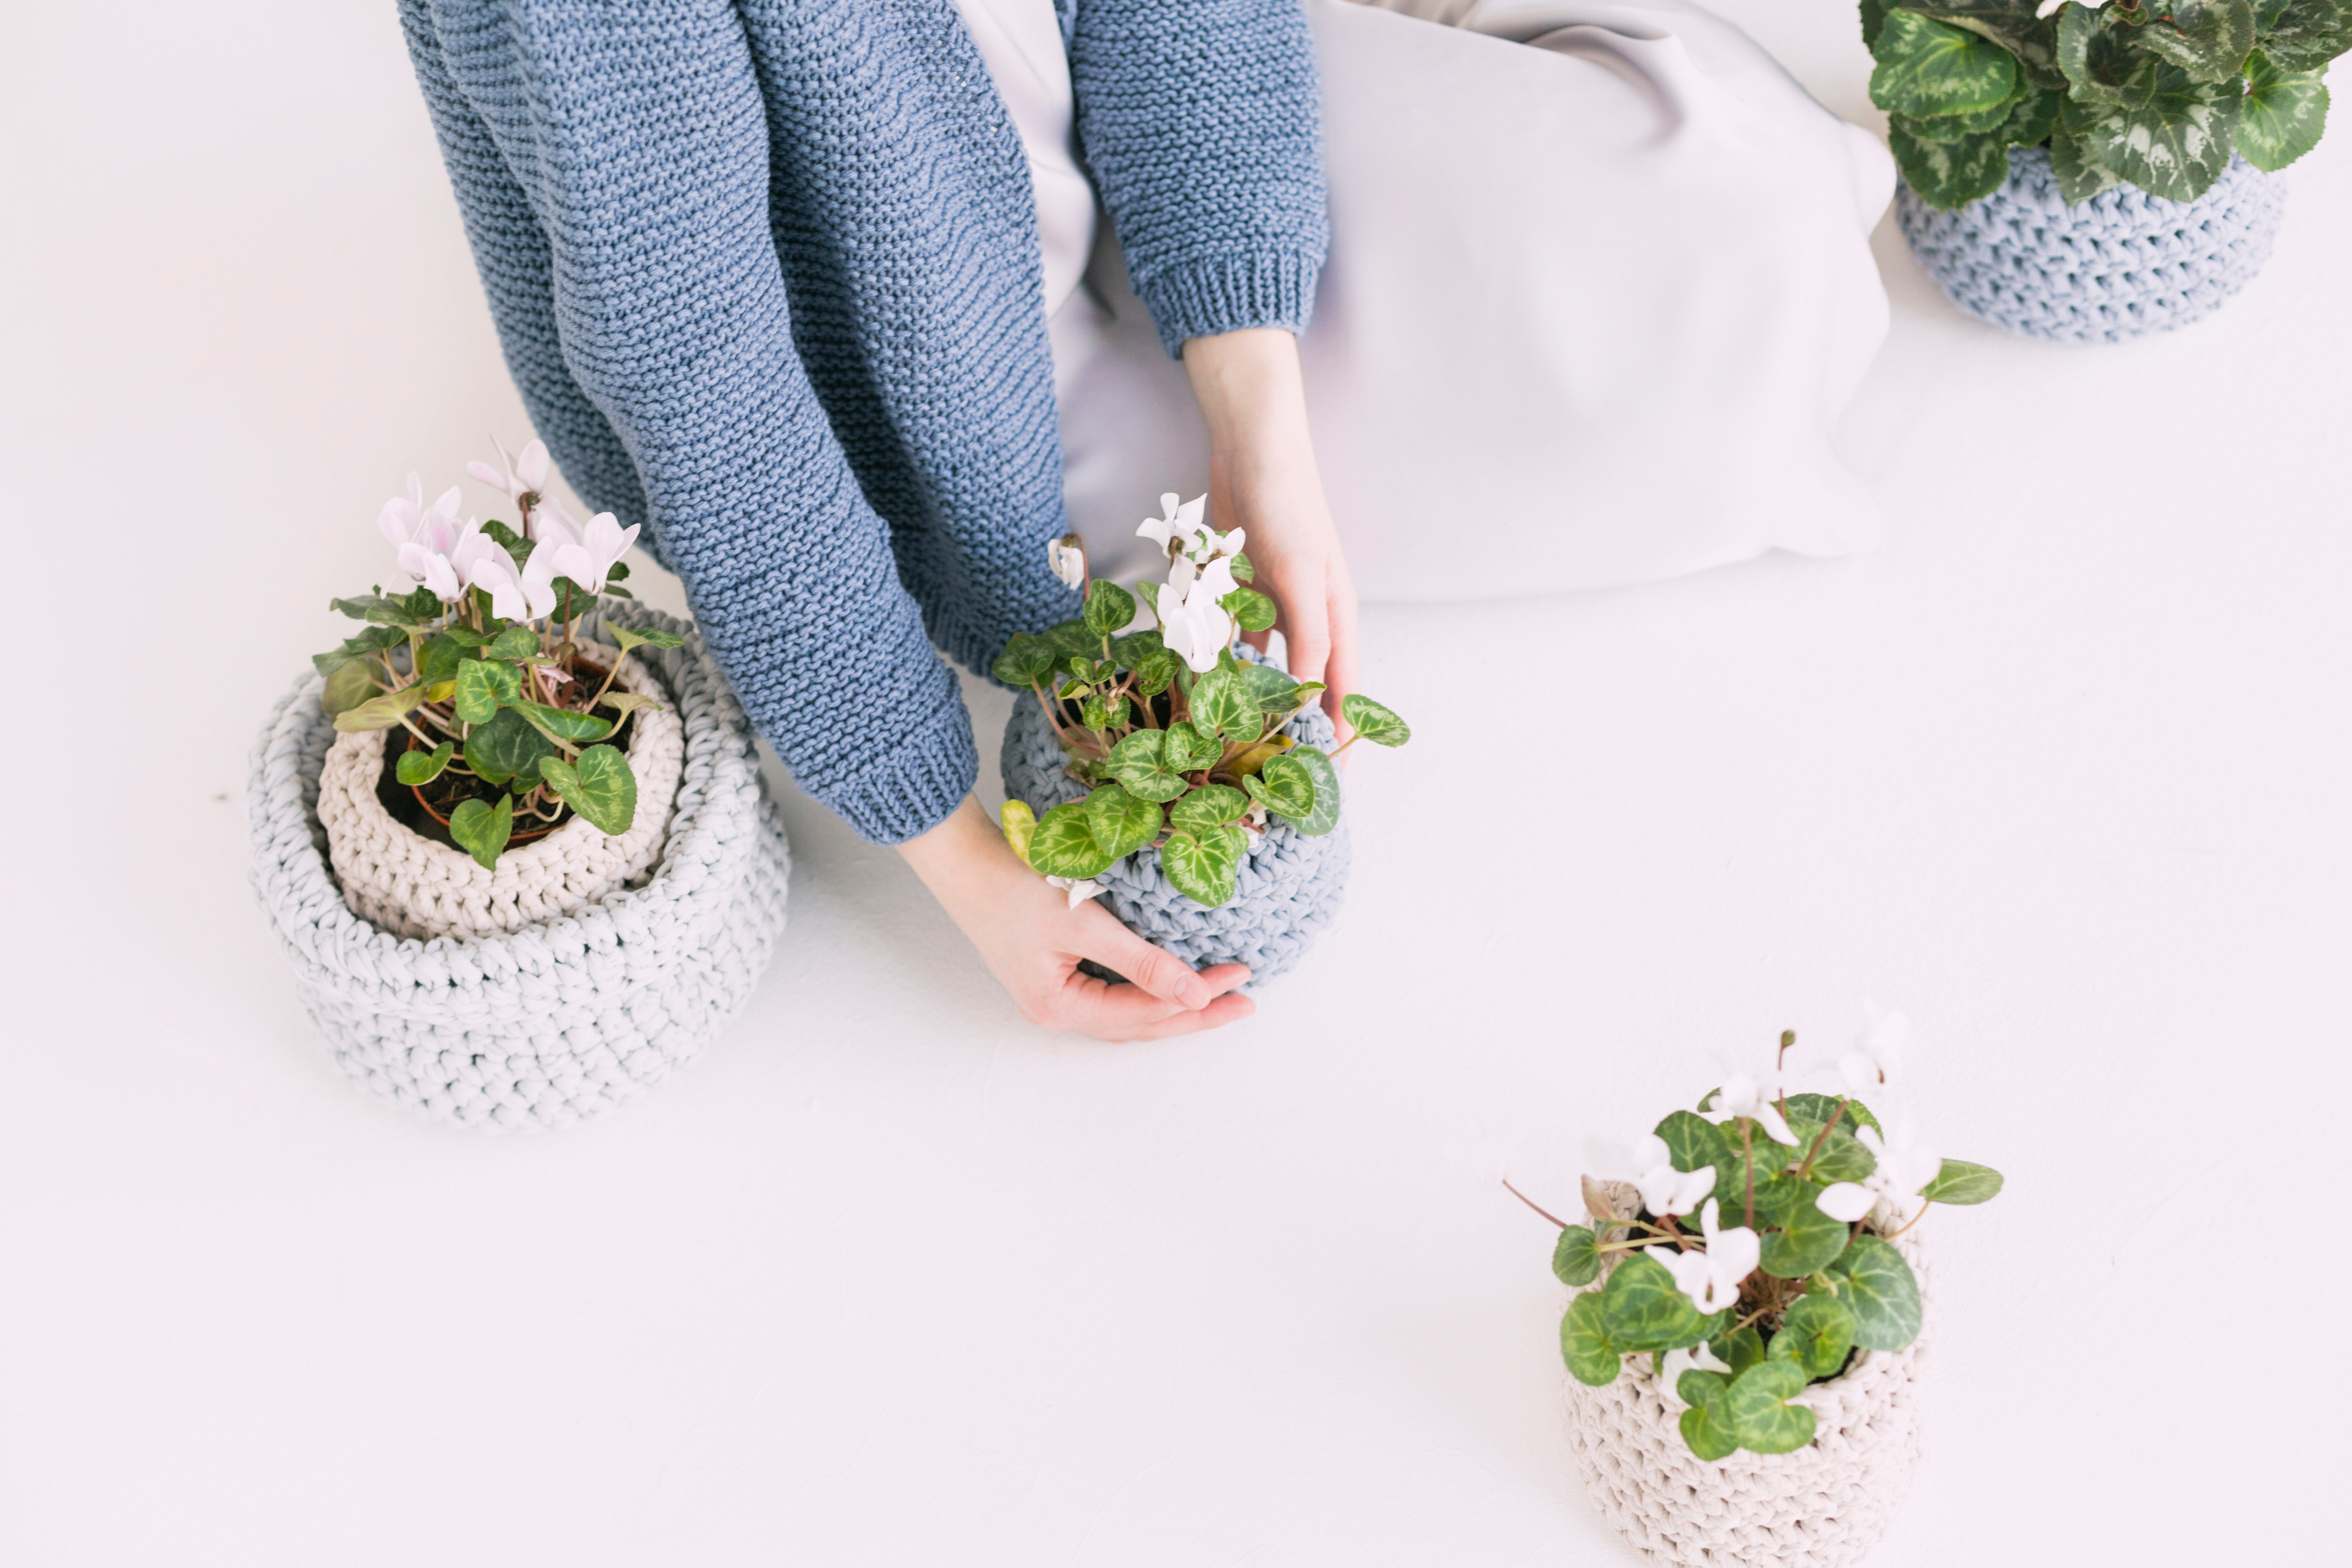 Person in Blue Sweater Holding Green Potted Plant, Indoors, Young, Woman, Sweater, HQ Photo